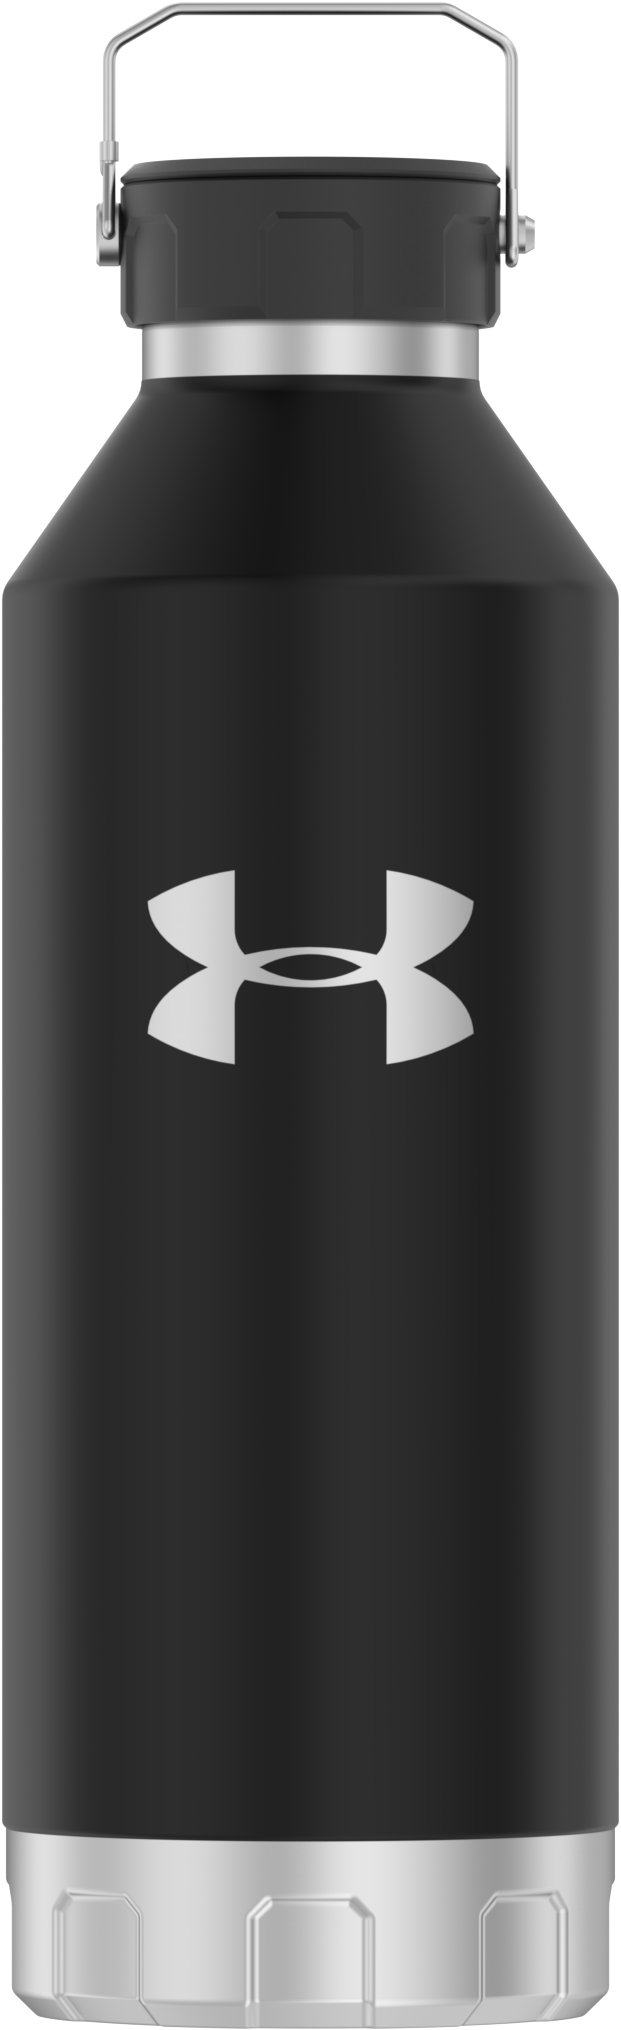 UA Peak 40 oz. Stainless Steel Water Bottle, Black ,